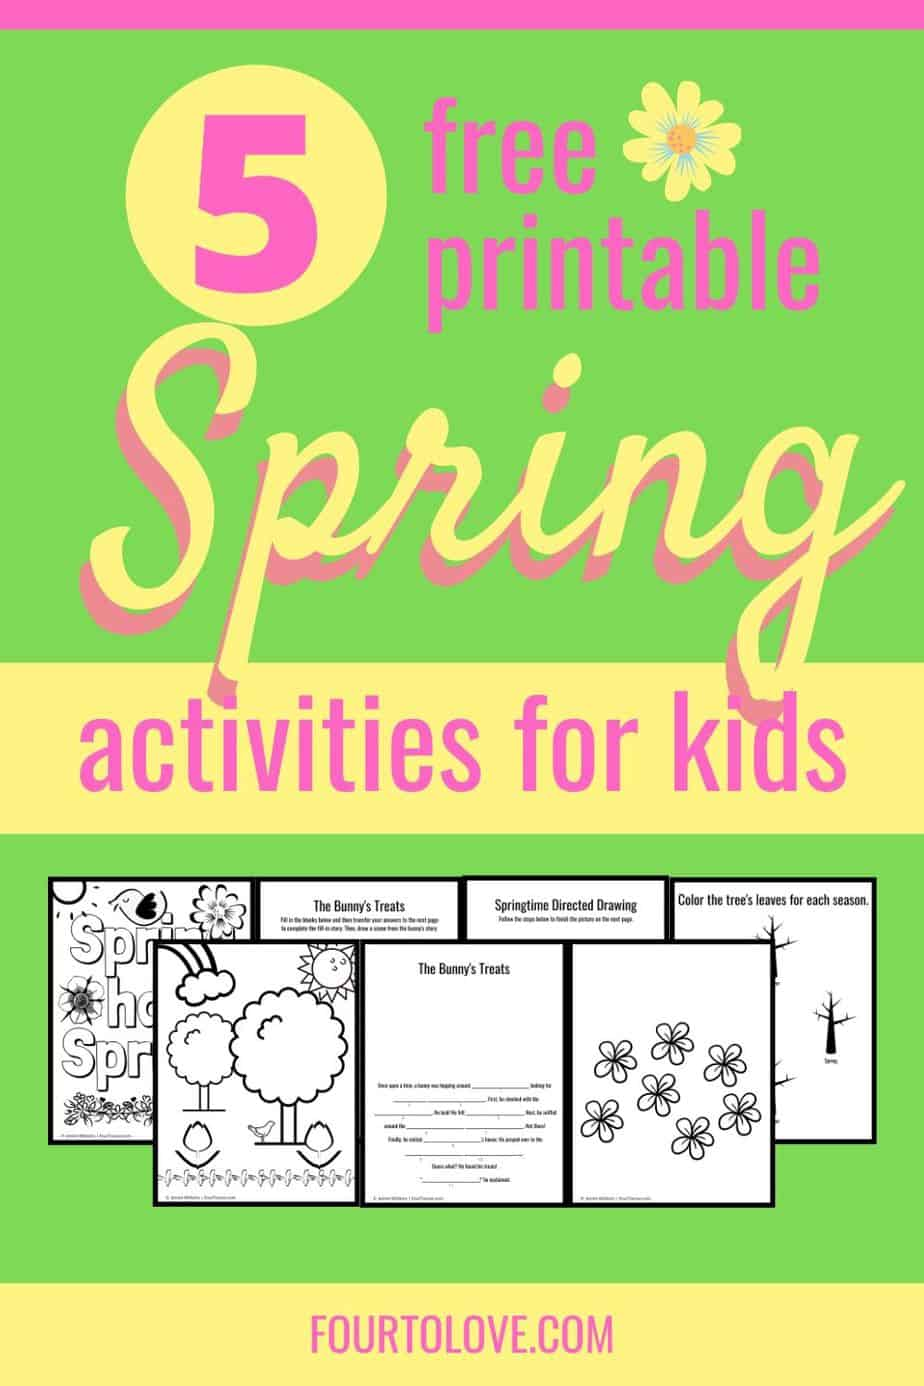 5 free printable spring activities for kids